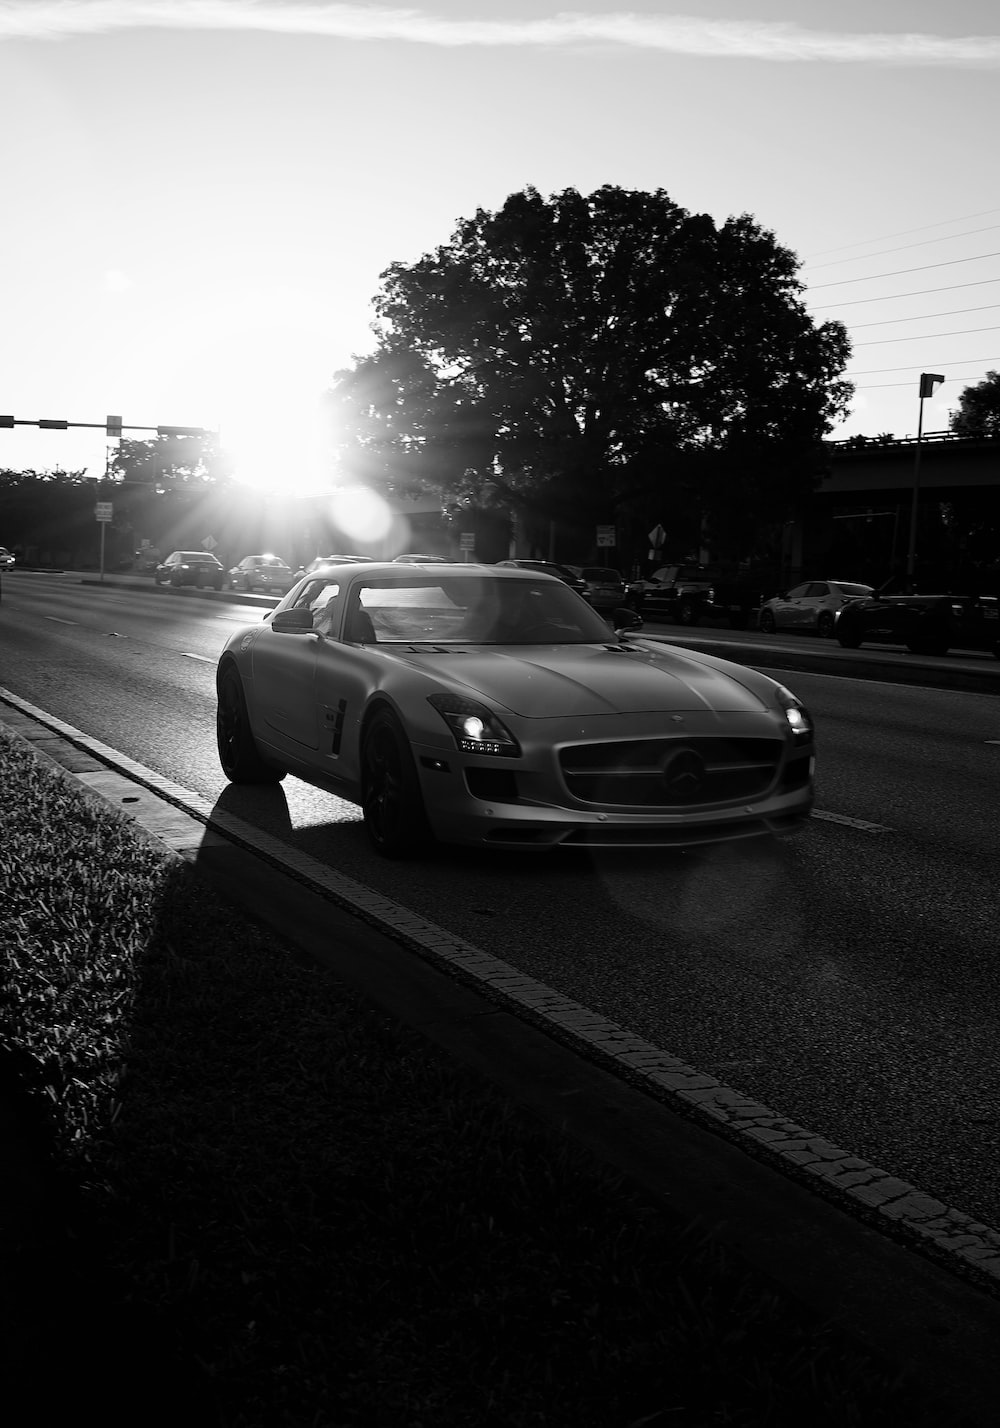 grayscale photo of car on road